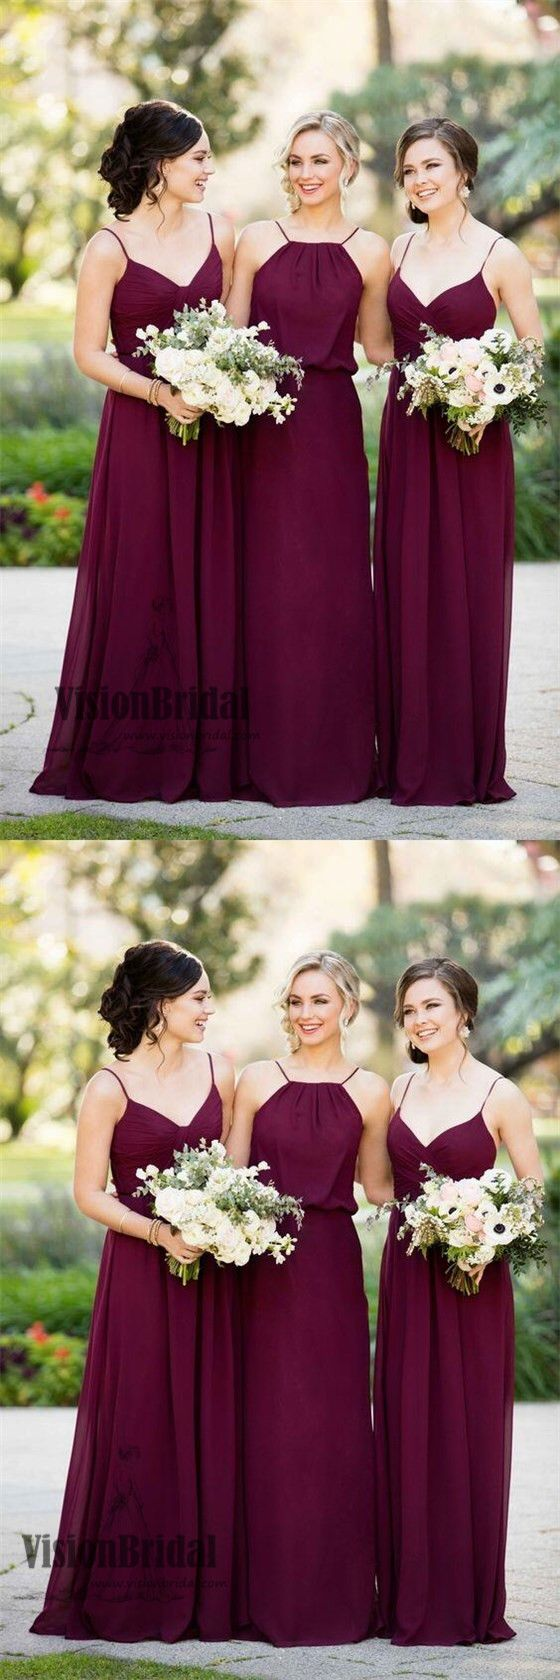 66d7cda9d1f 2018 Simple Charming Mismatched Spaghetti Straps Pleating A-Line Long  Chiffon Bridesmaid Dress